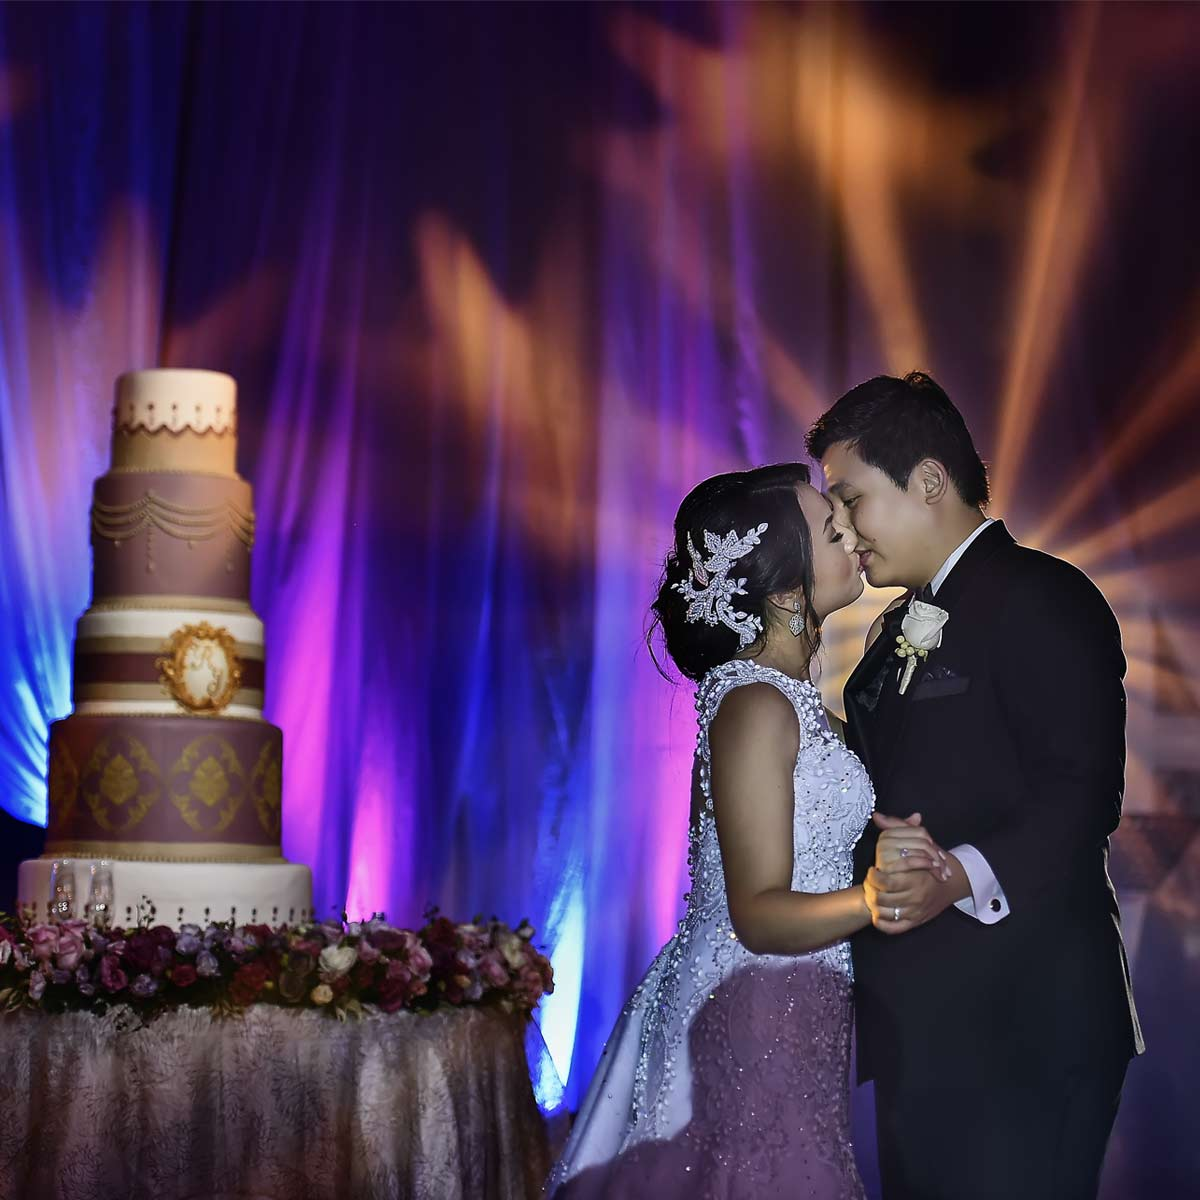 wedding cake with couple dancing with kiss shot by Benjamin Young III